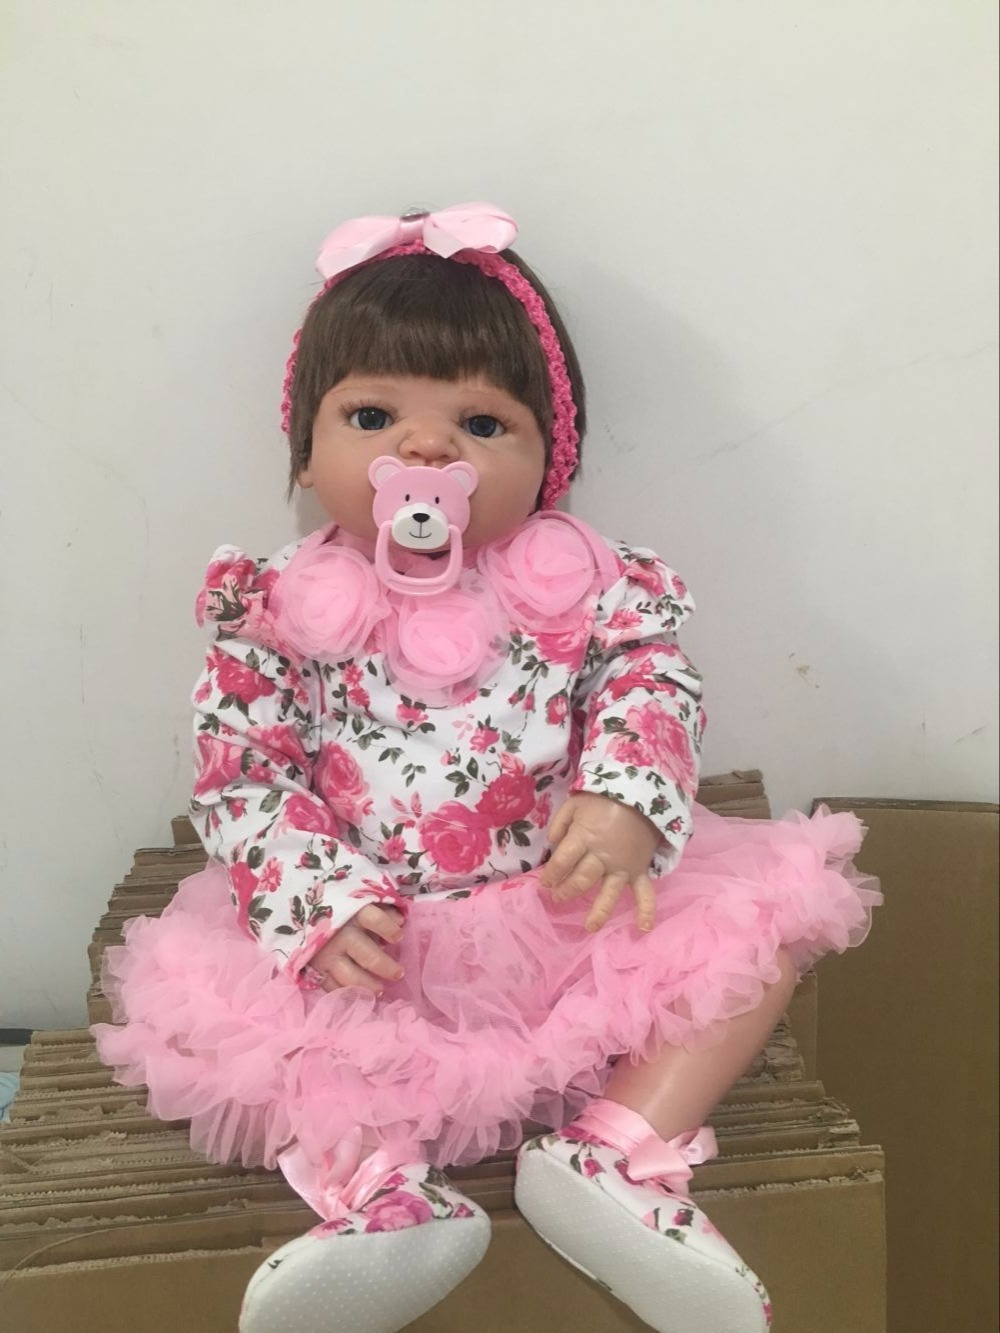 55cm Full Body Silicone Reborn Baby Doll Toys 22 Lifelike Newborn Girl Babies Dolls Gift Birthday Gift Bathe Toy 55cm new hair color full body silicone reborn baby doll toys realistic newborn girl babies dolls gift birthday gift bathe toy